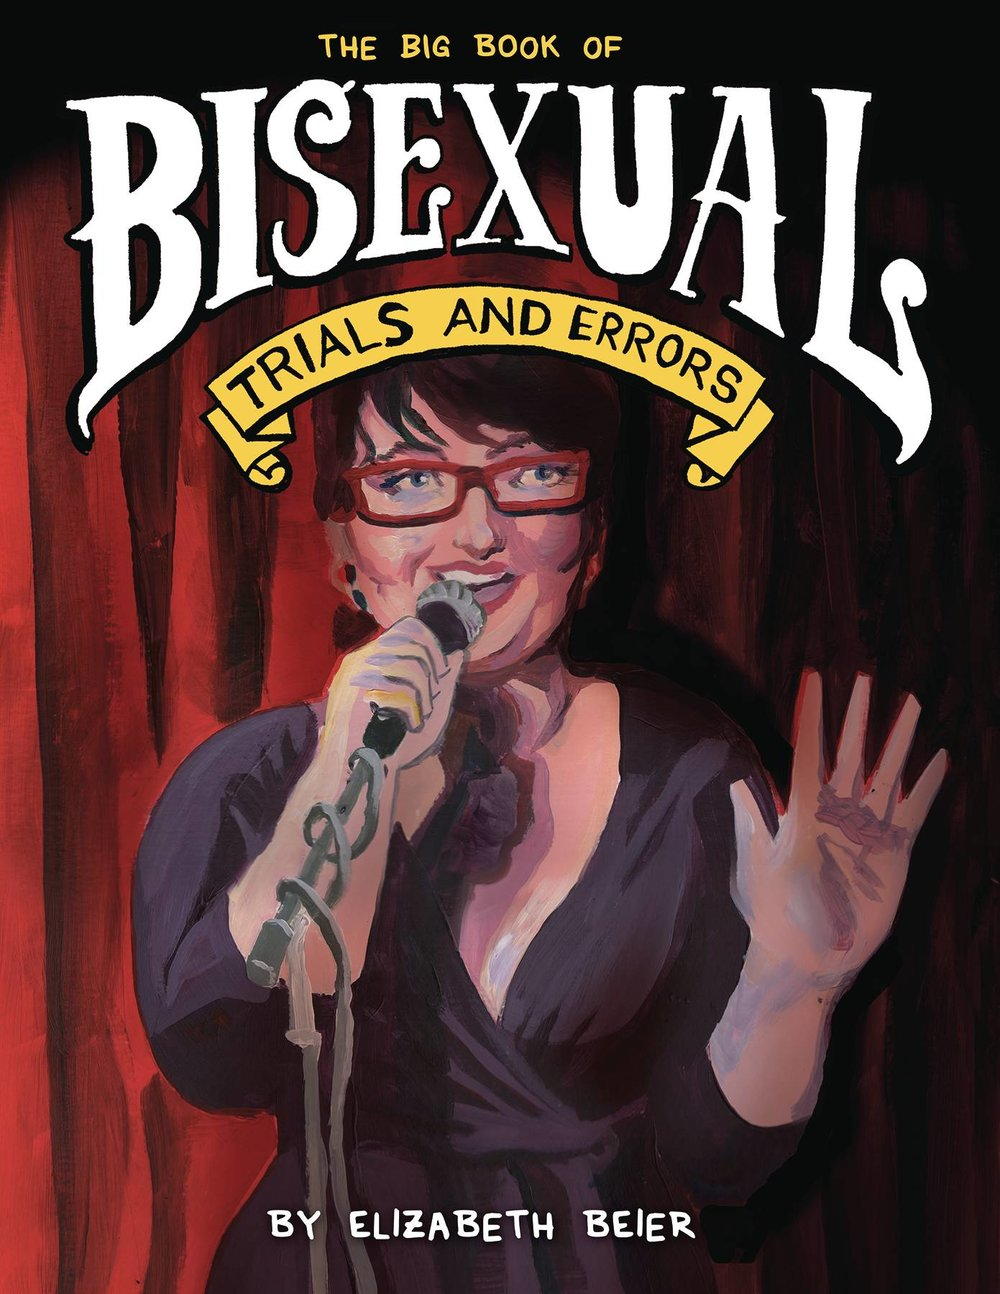 BIG BOOK OF BISEXUAL TRIALS AND ERRORS GN.jpg